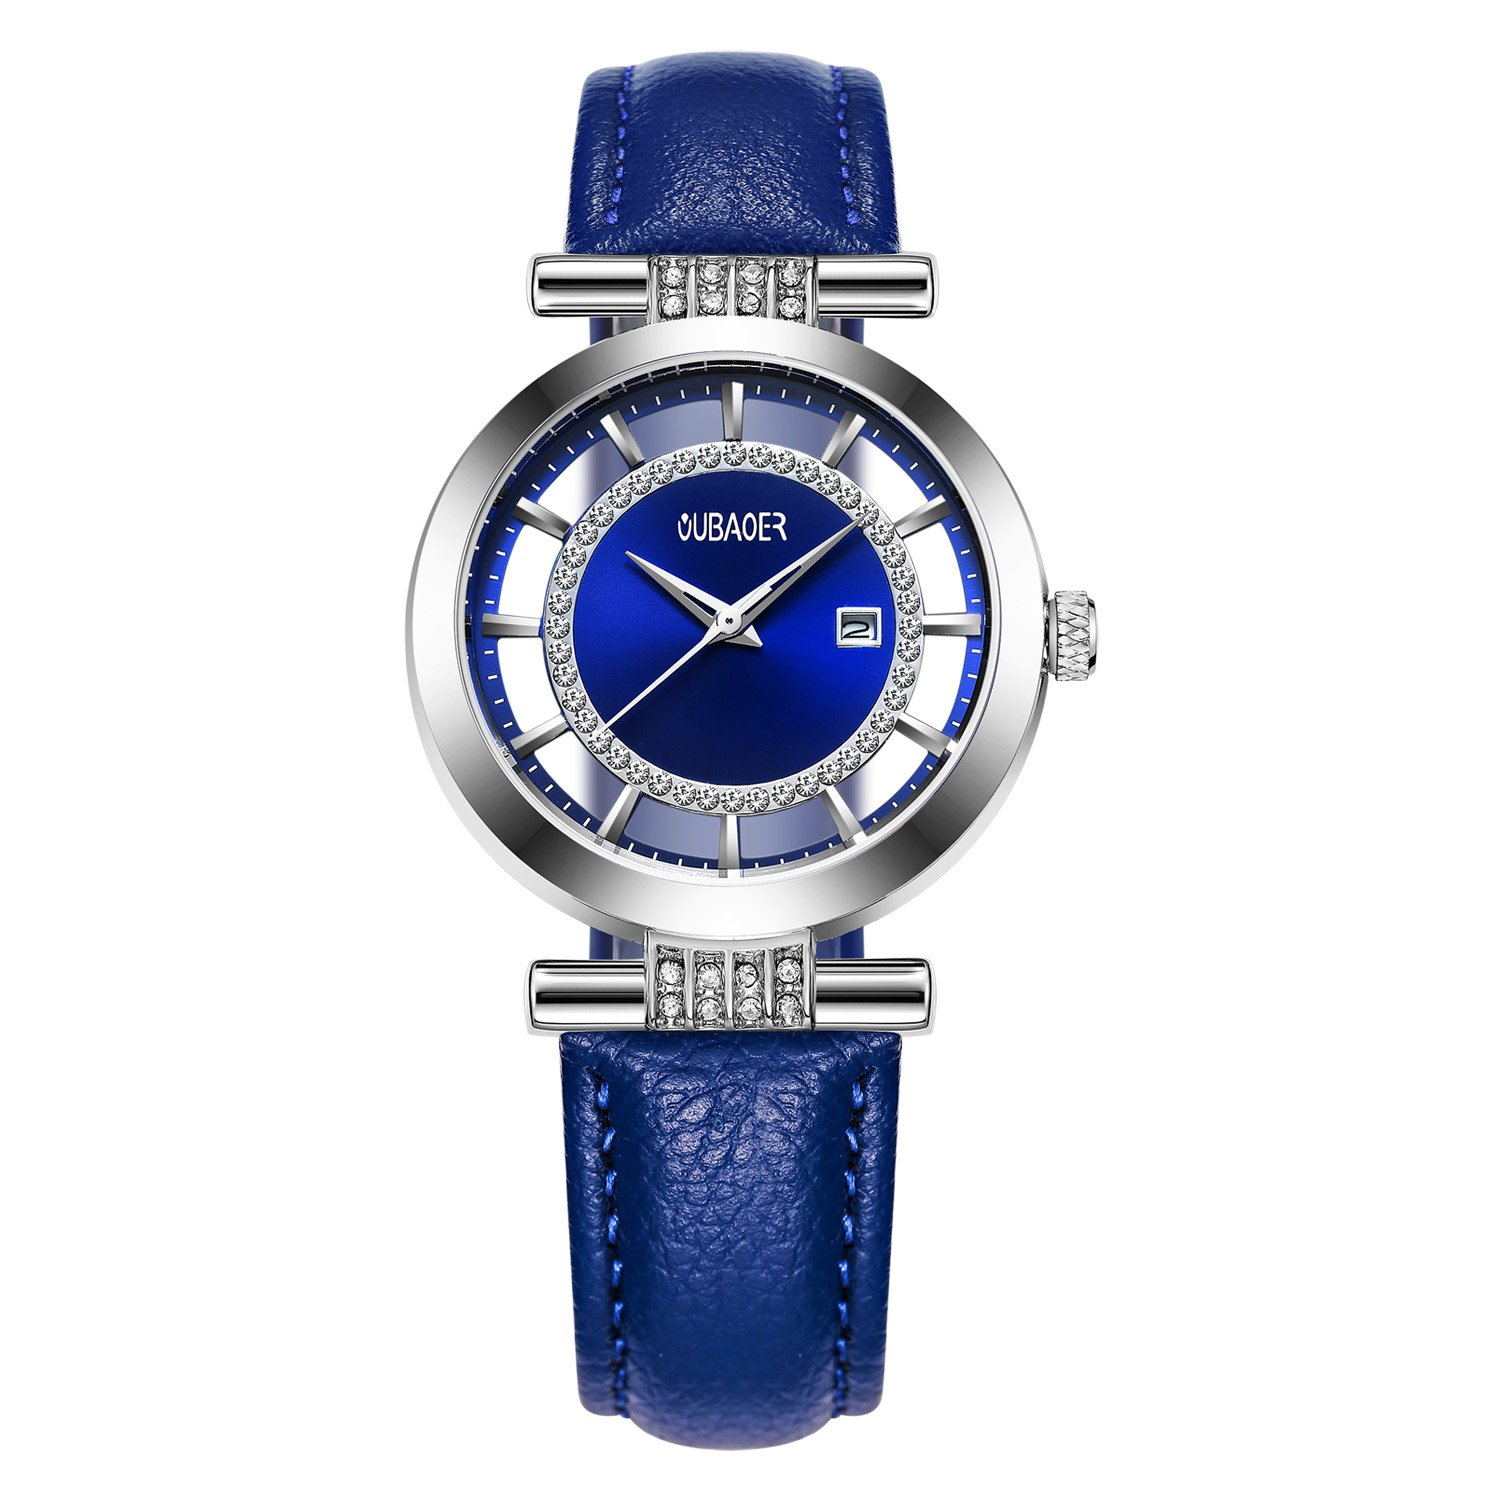 Womens Quartz Watch OUBAOER Crystal Accented Leather Band Watch for Women Transparent Watch with Date Lady Wristwatches for Business(Silver Blue)